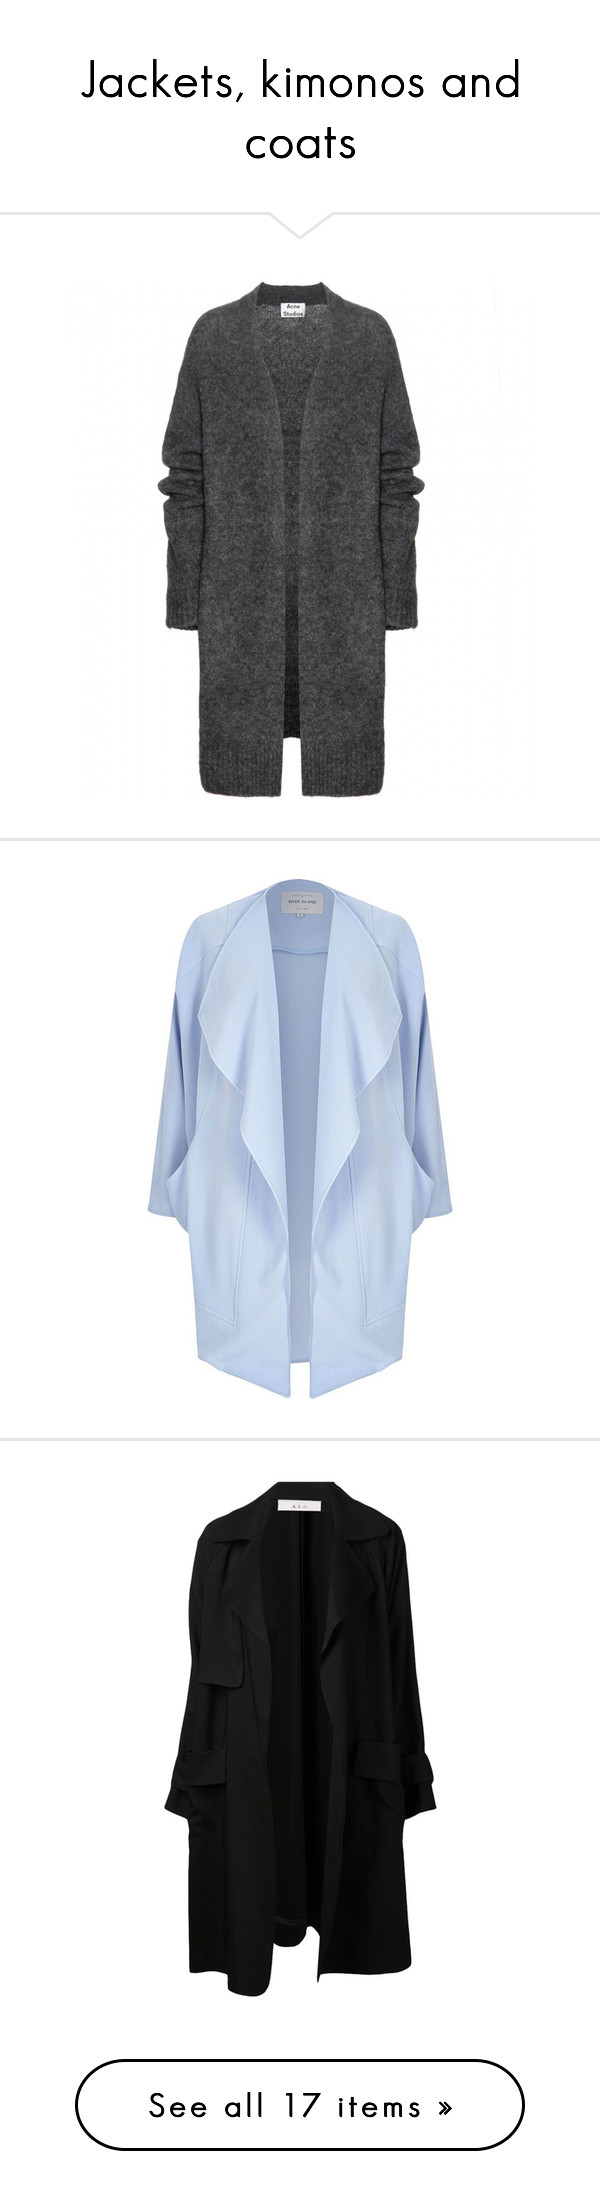 """""""Jackets, kimonos and coats"""" by dymova ❤ liked on Polyvore featuring tops, cardigans, jackets, outerwear, neuletakit, grey, grey cardigan, gray wool cardigan, acne studios and grey top"""